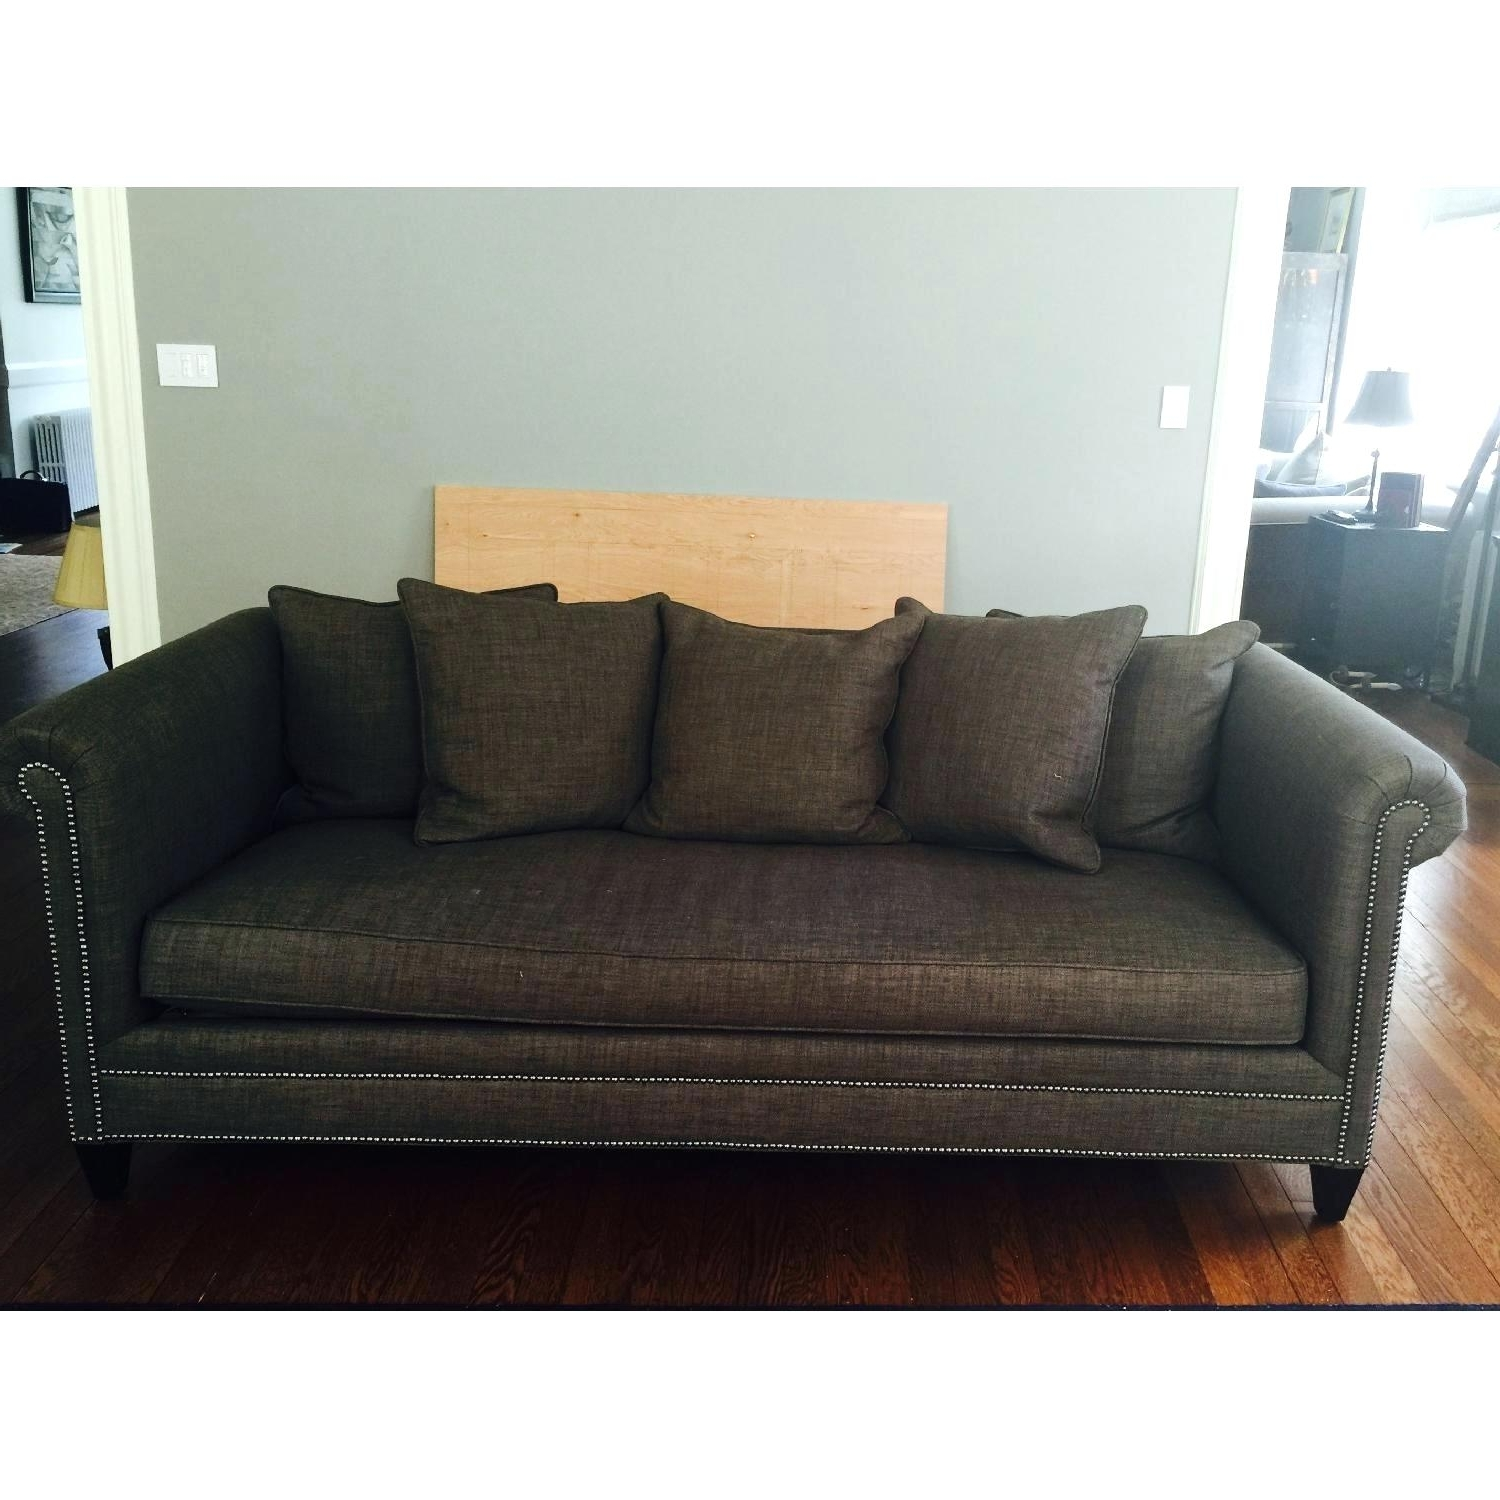 Preferred Durham Region Sectional Sofas Pertaining To Durham Furniture Stores Raleigh Region Ontario Used (View 7 of 15)